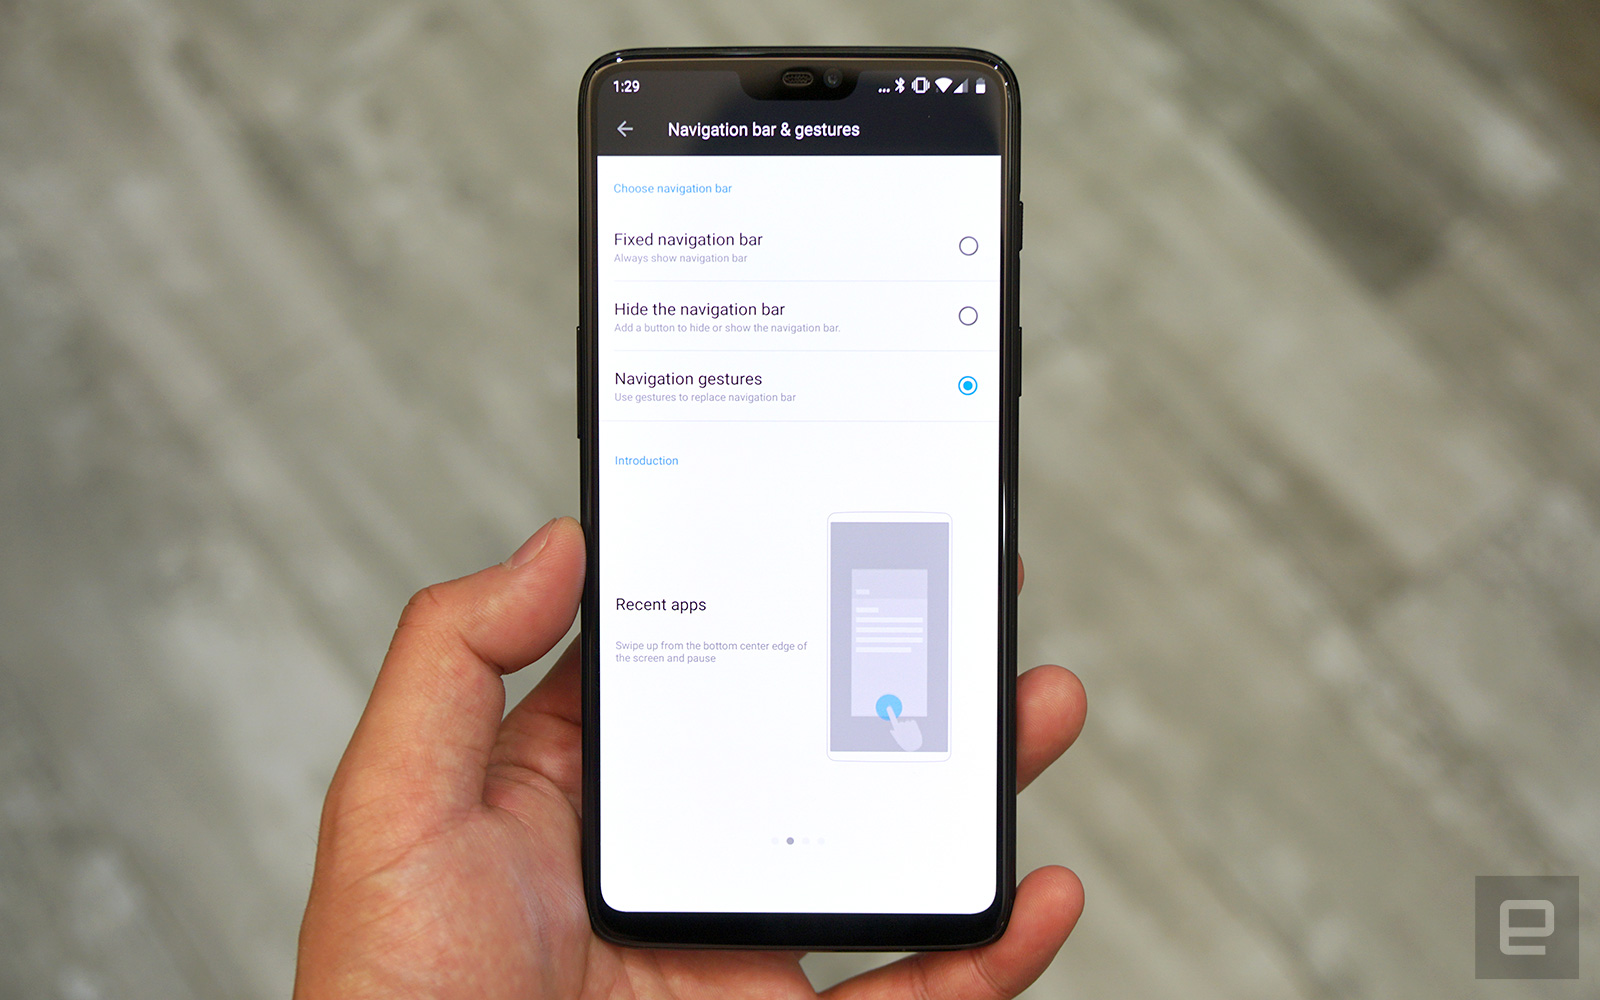 - oneplus 6 navigation gestures - A big step closer to the perfect smartphone